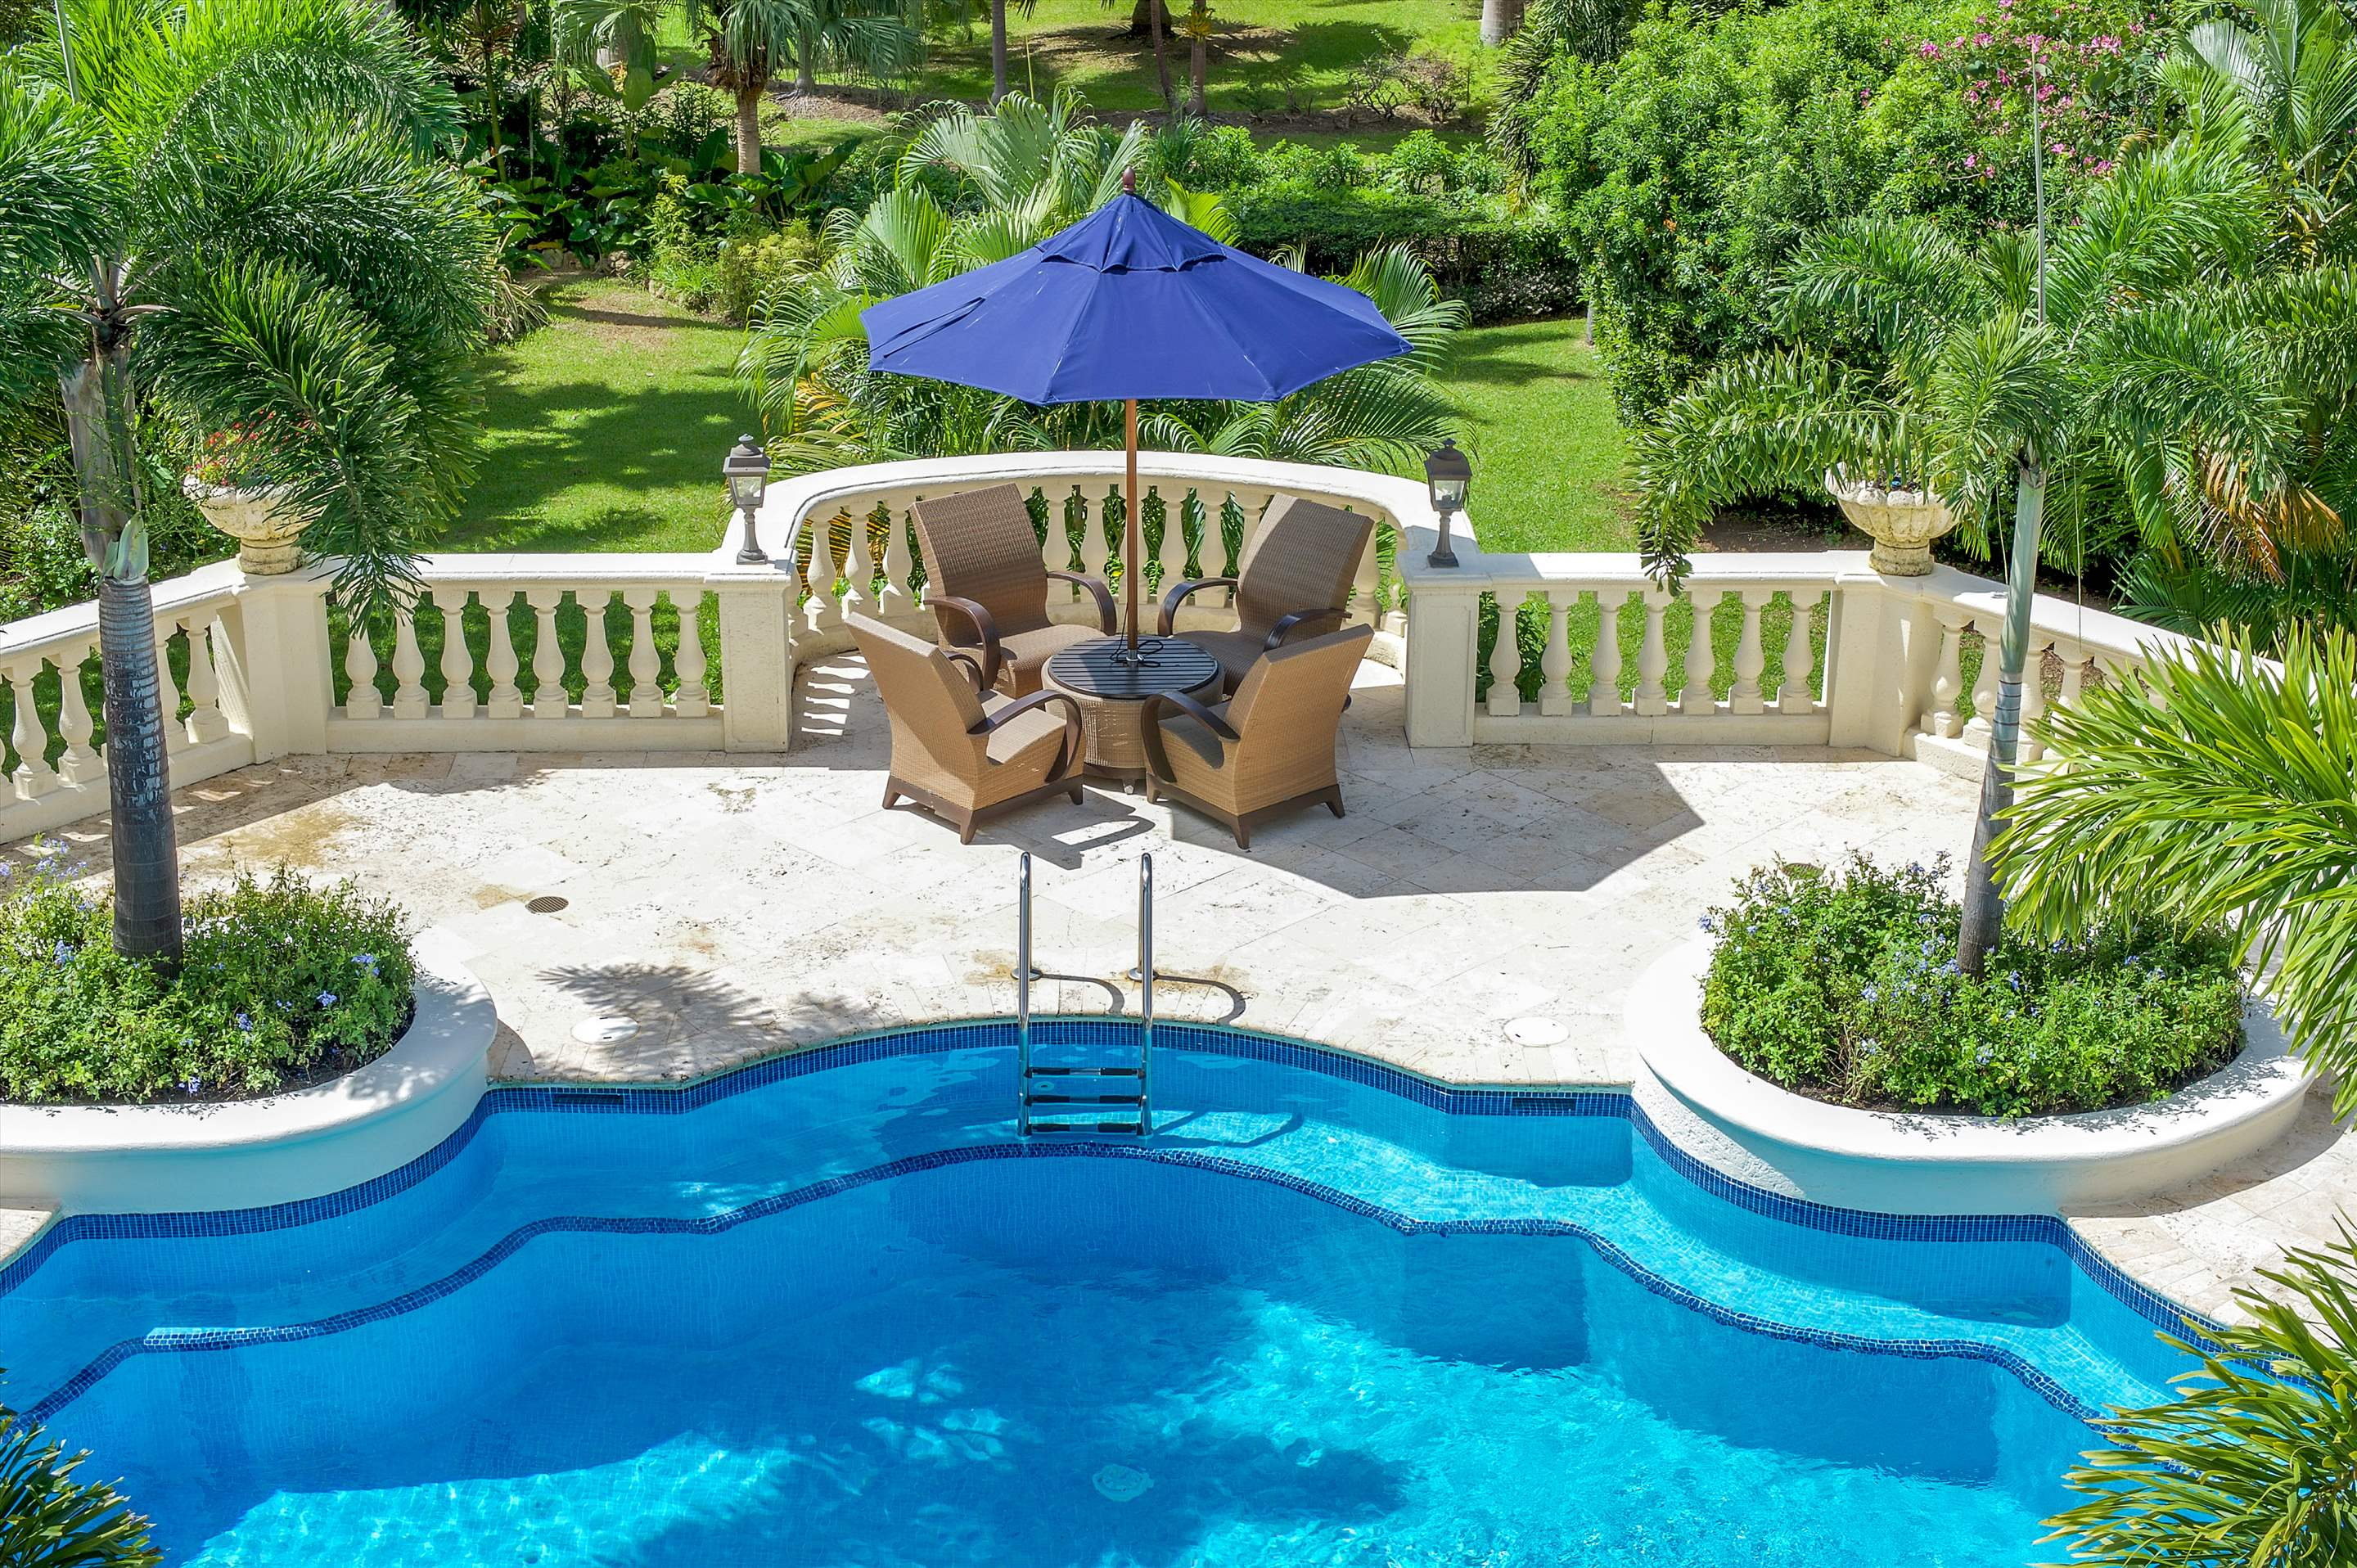 Plantation House, Royal Westmoreland, 6 bedroom, 6 bedroom villa in St. James & West Coast, Barbados Photo #8